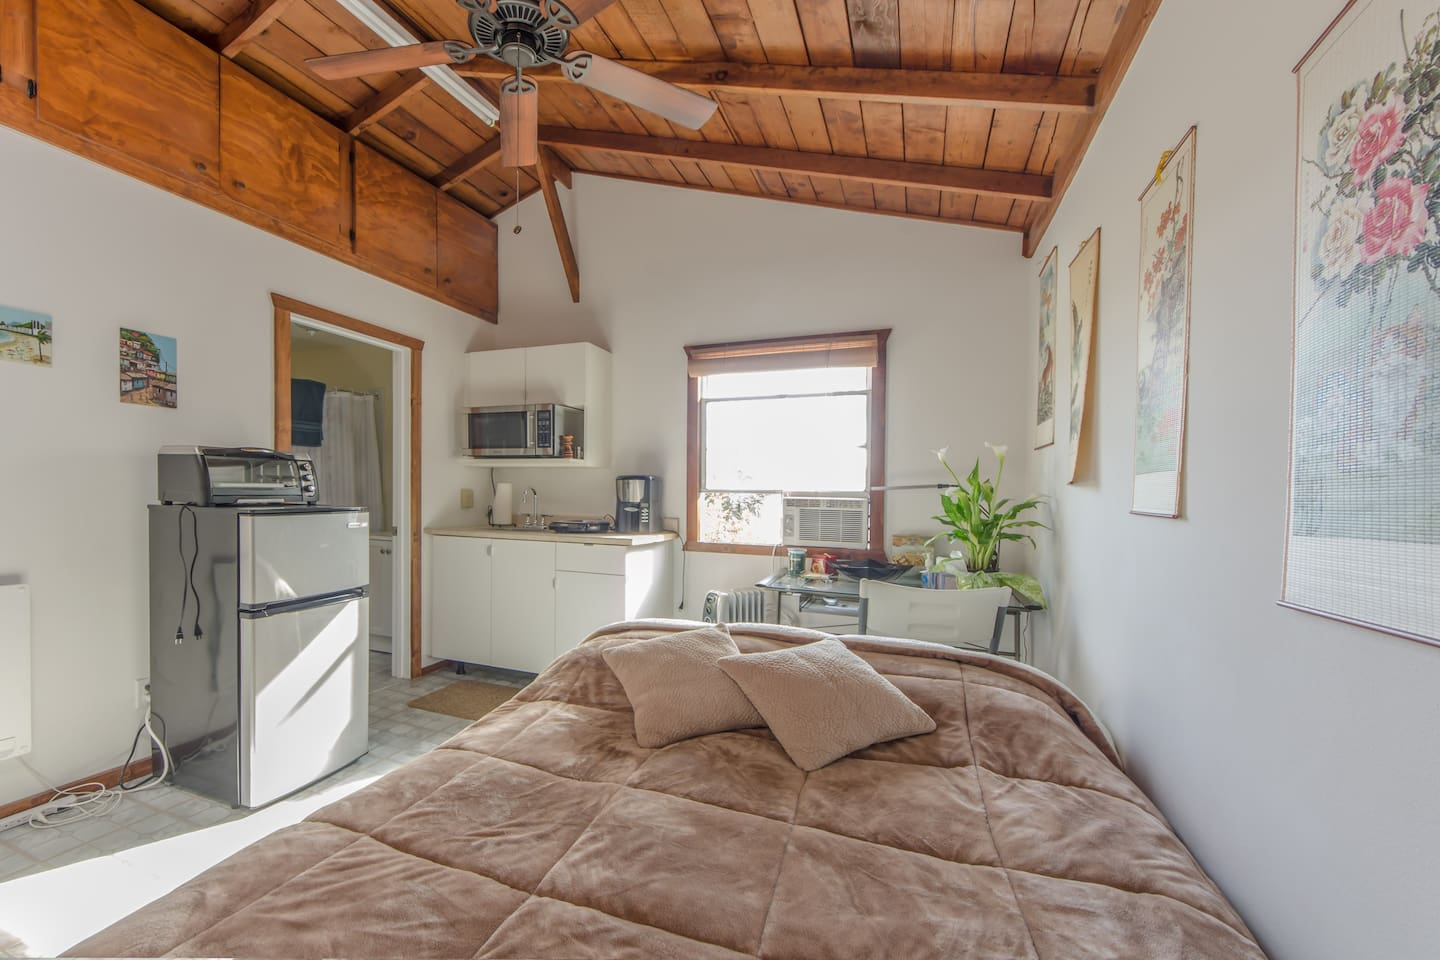 Clean well taken care guest house with high,ceiling fan +A/C+ heater,hard memory foam bed+laptop stand +closet+ stove +refrigerator + hi speed wi fi +extra goodies upon arrival:) Complete privacy and secure parking 24/7 Is a nice location :)